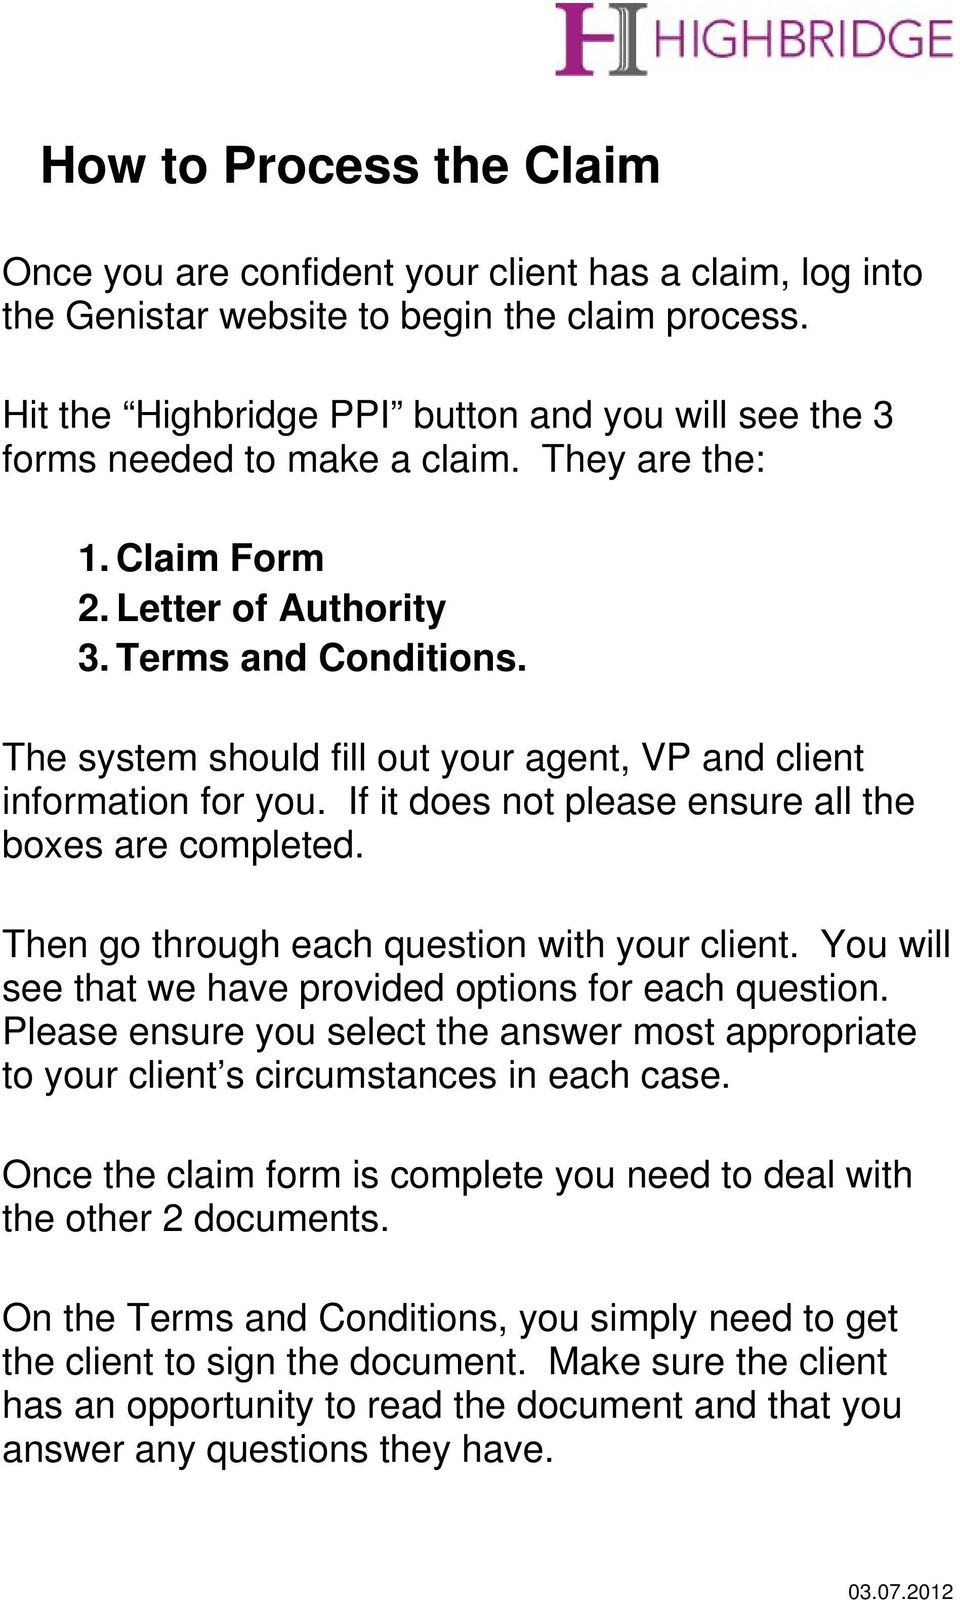 The system should fill out your agent, VP and client information for you. If it does not please ensure all the boxes are completed. Then go through each question with your client.